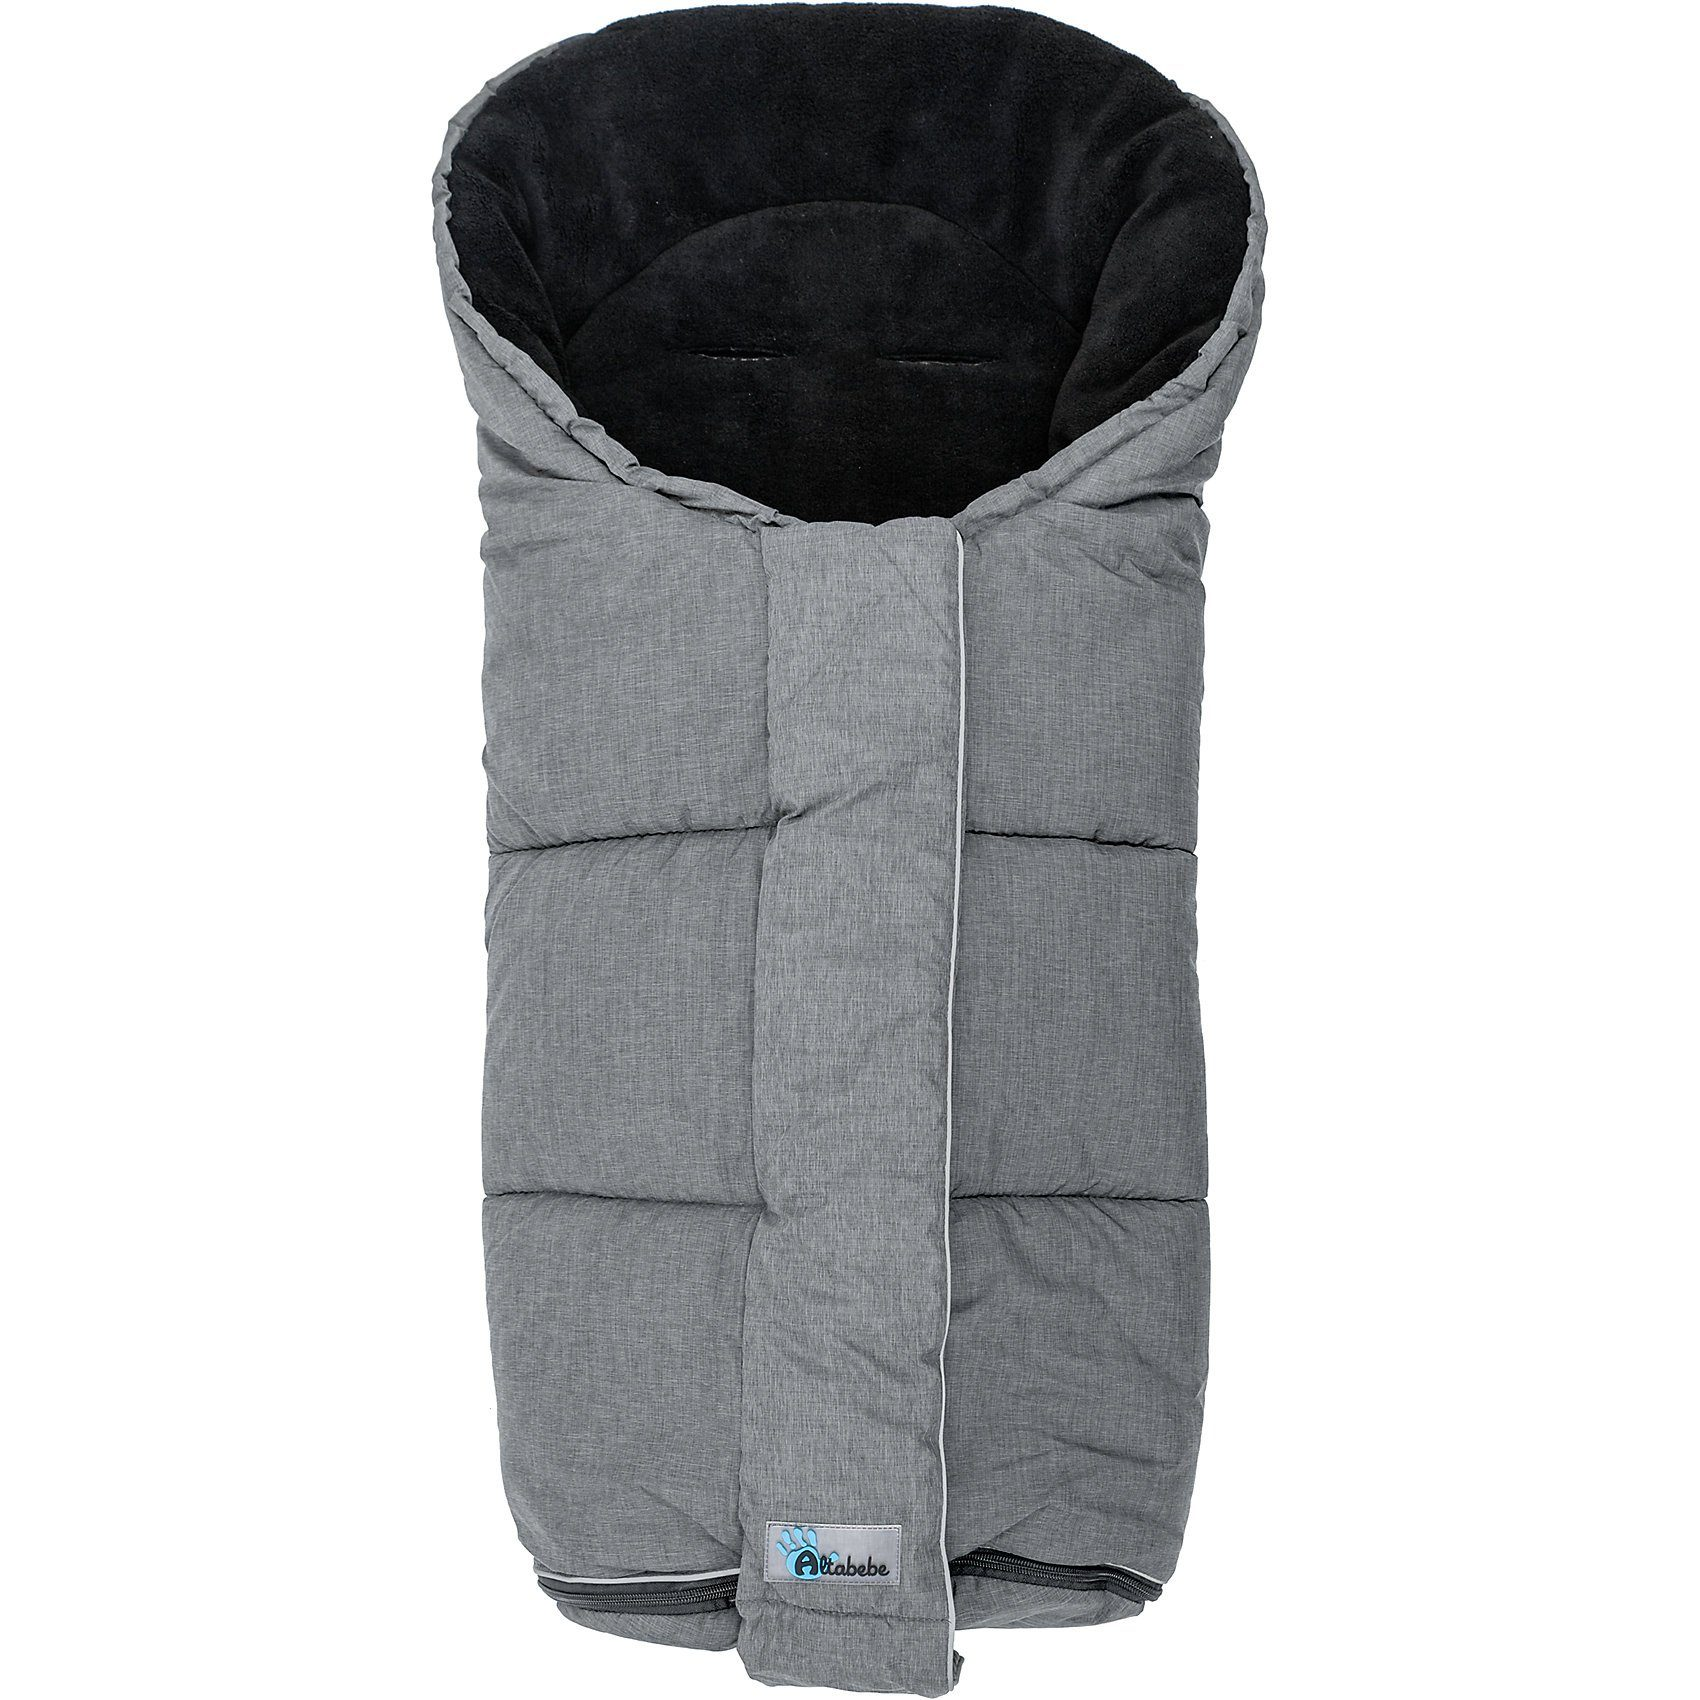 Baby Fußsack Kinderwagen Winter Altabebe Winterfußsack Flash Für Kinderwagen Und Buggy